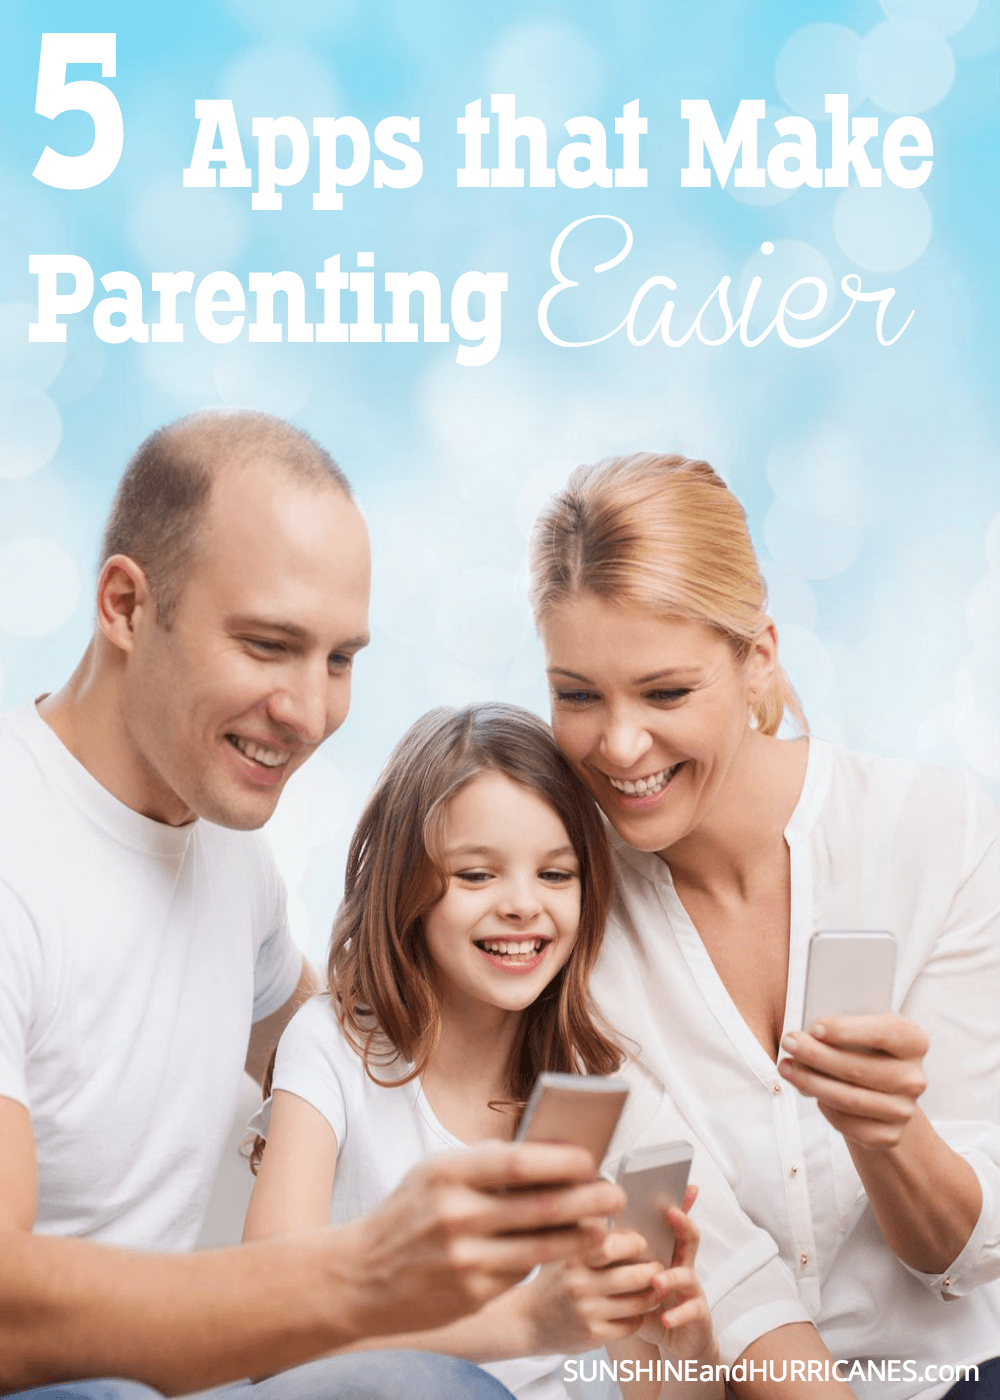 Looking for ways to make this parenting job at least a little less difficult? While there are no magic wands, with the wonders of technology parents really can find tools to assist them with managing their households and taking care of their families. Here we will share 5 apps that make parenting easier. SunshineandHurricanes.com